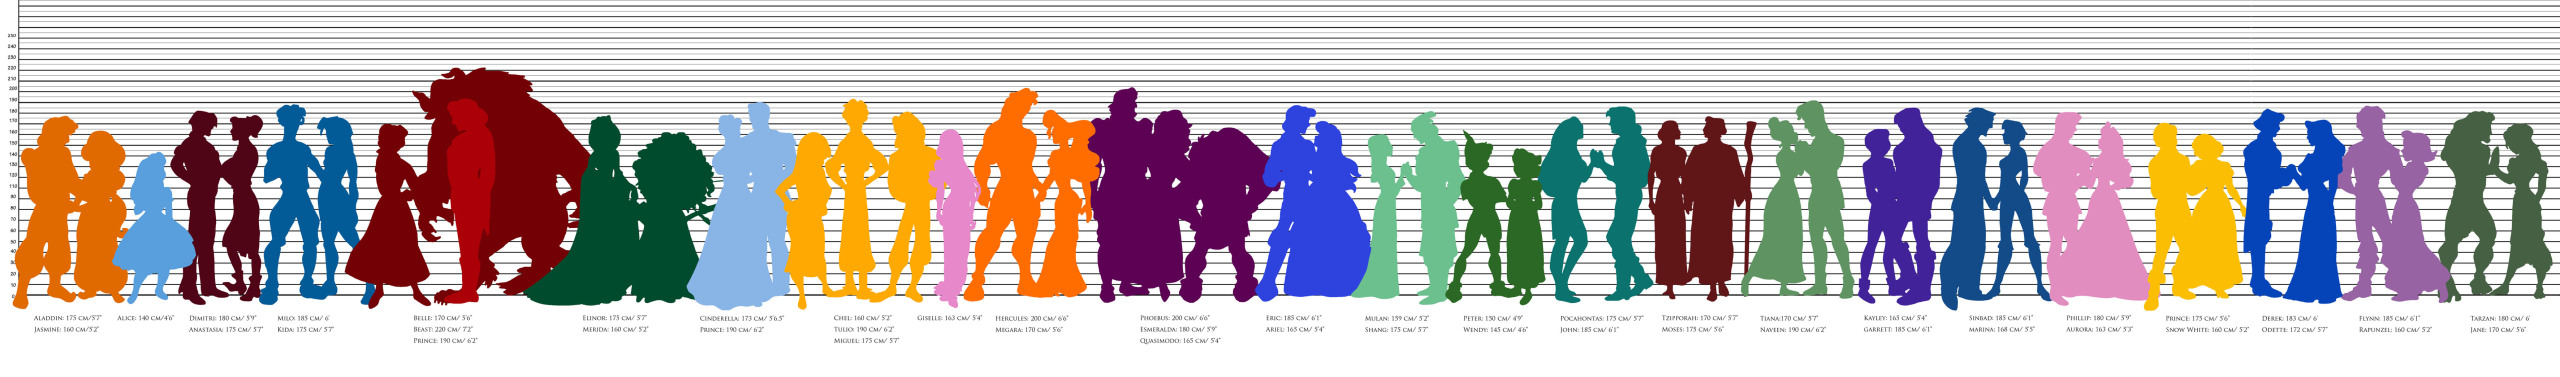 thatdisnerd:  Alice is 4'6?!? I knew she was tiny, but whoa! As a short person myself I feel proud.